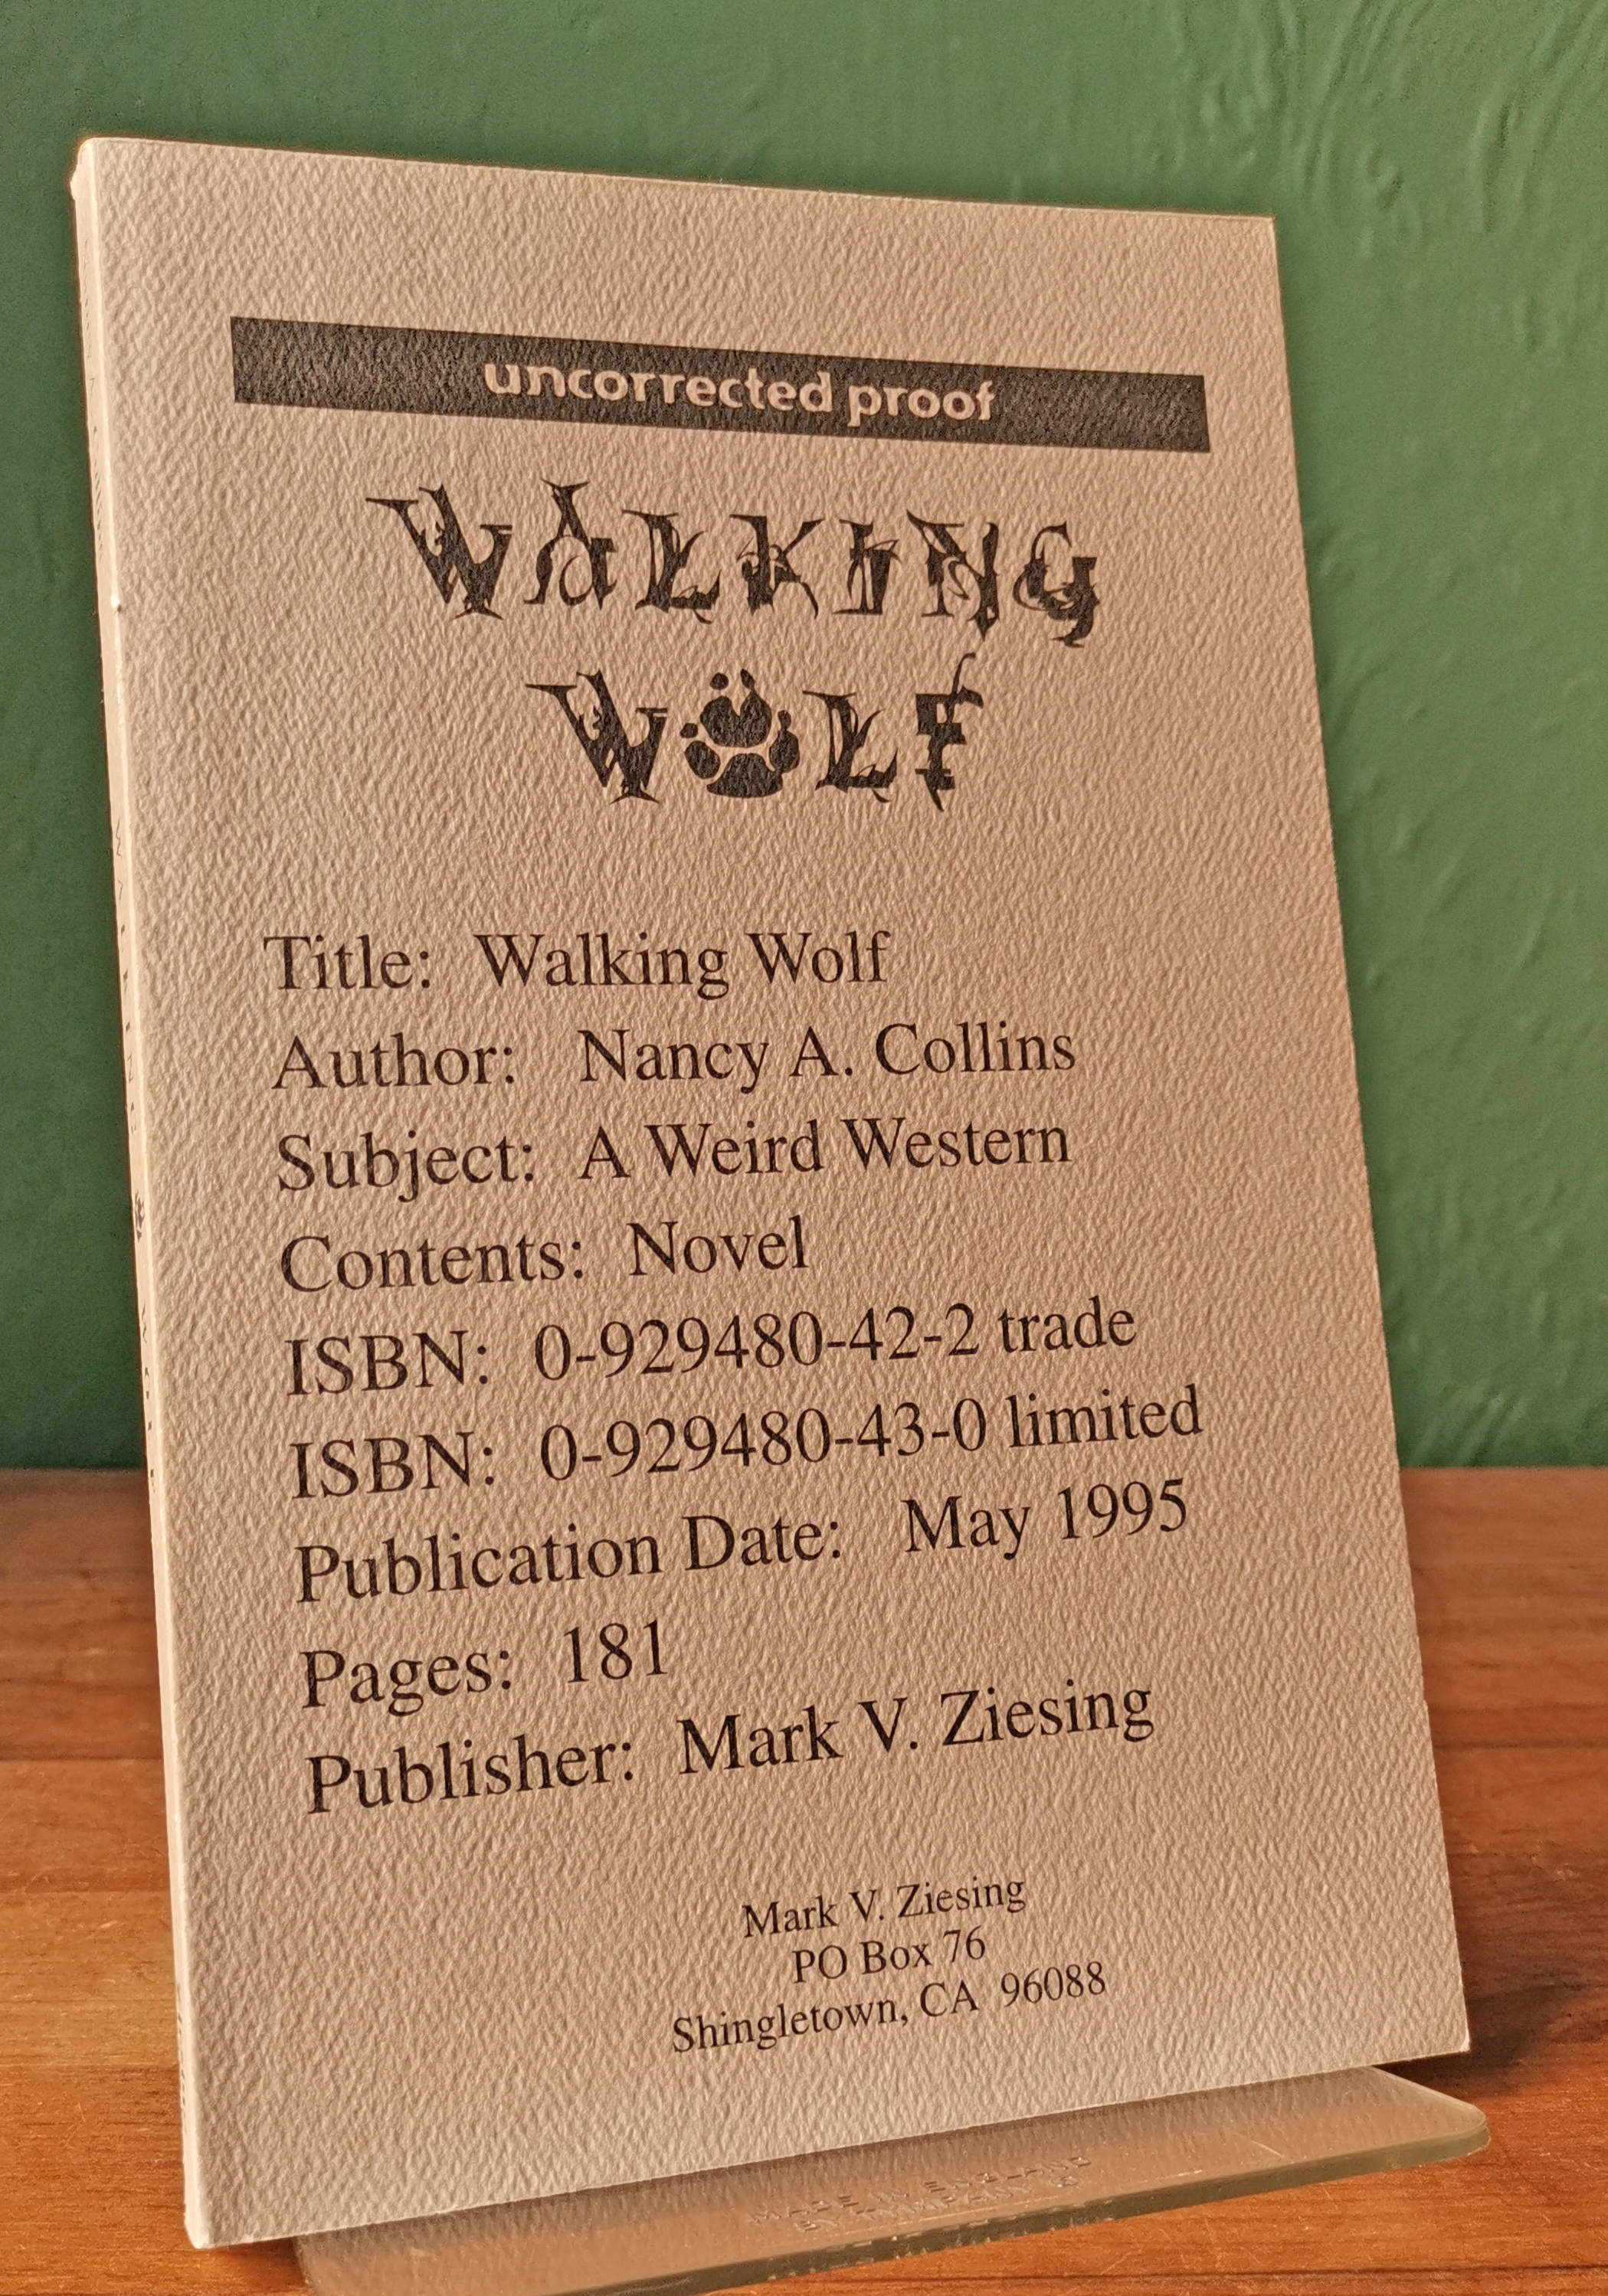 Walking Wolf US Proof